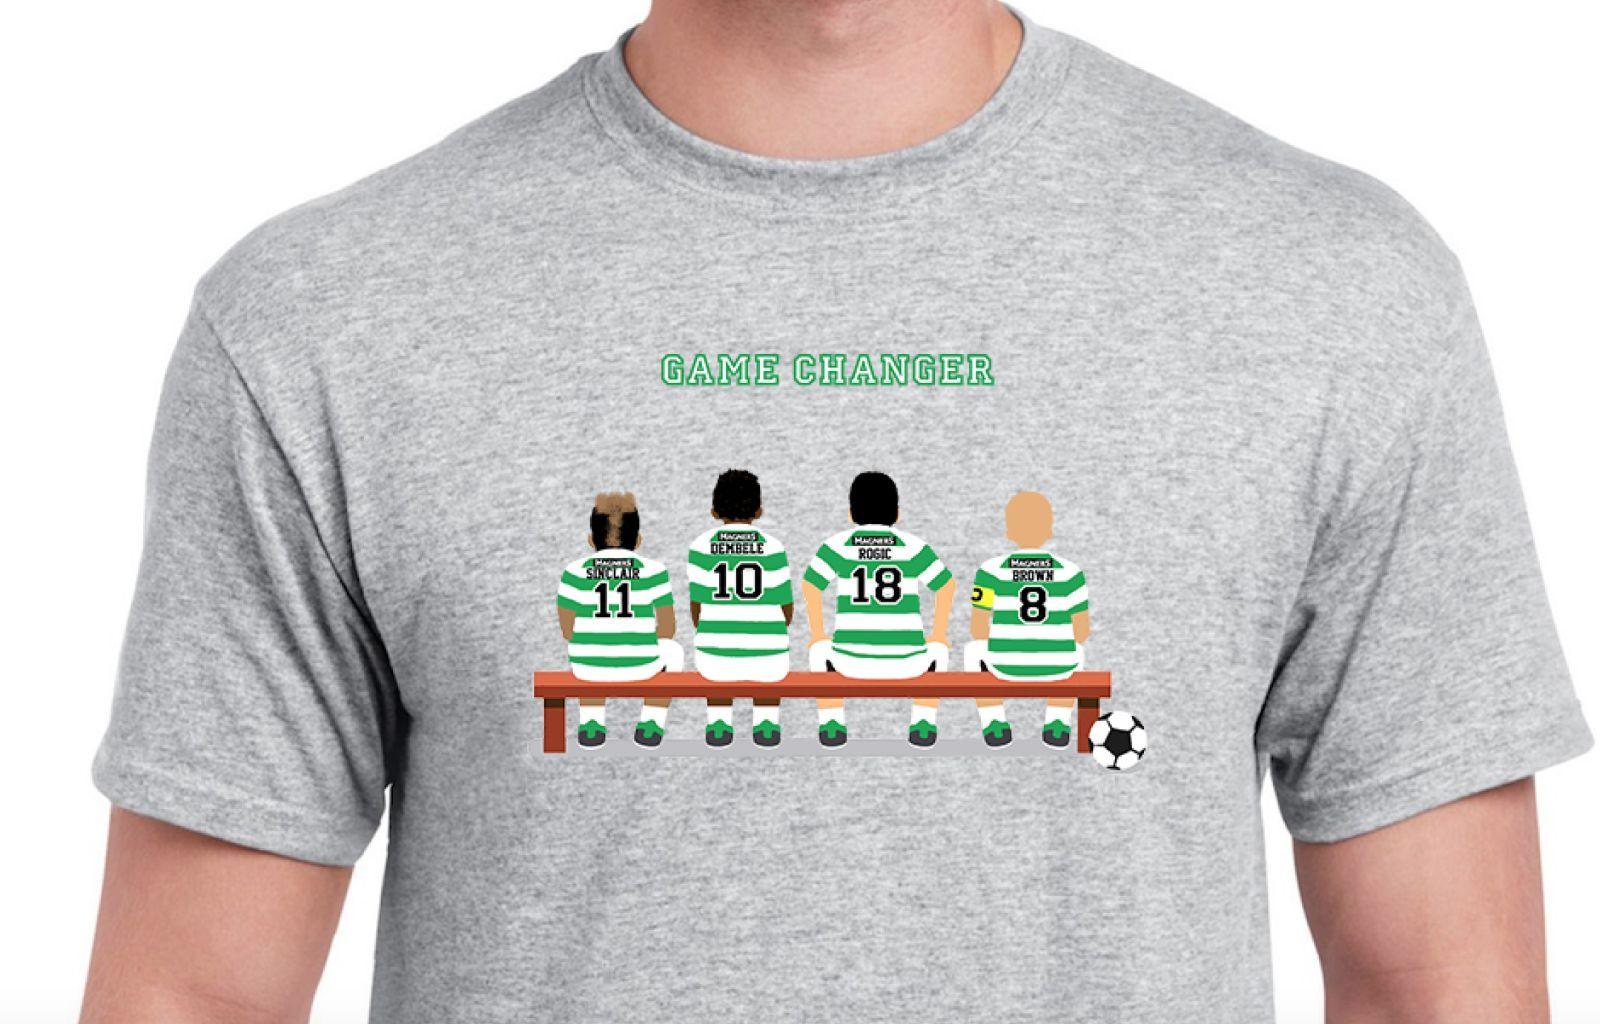 PERSONALISED FOOTBALL T-SHIRT-PICK YOUR OWN GAME CHANGING PLAYERS - TEAMS D - M